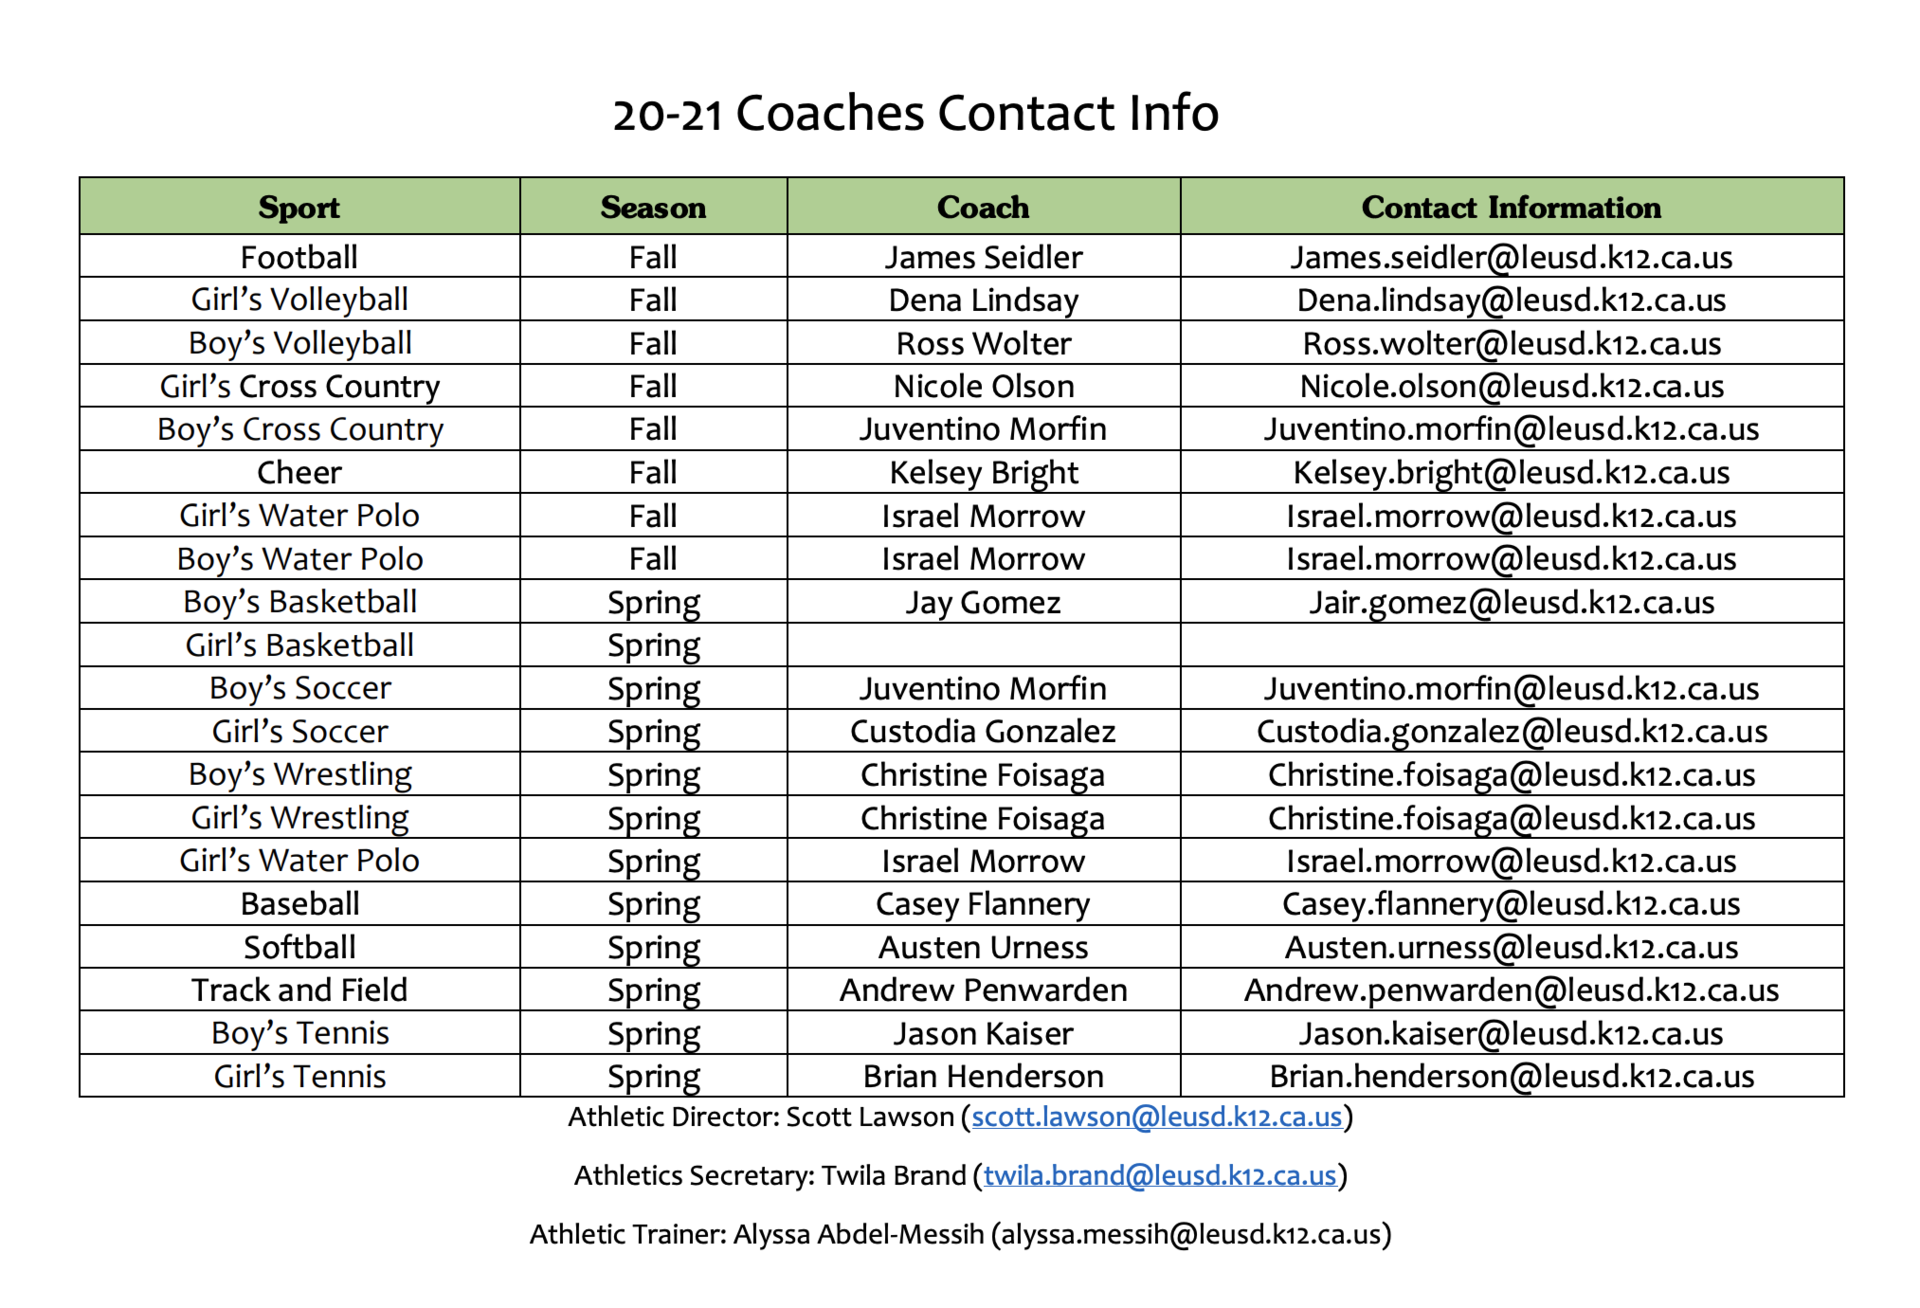 Coaches Contacts